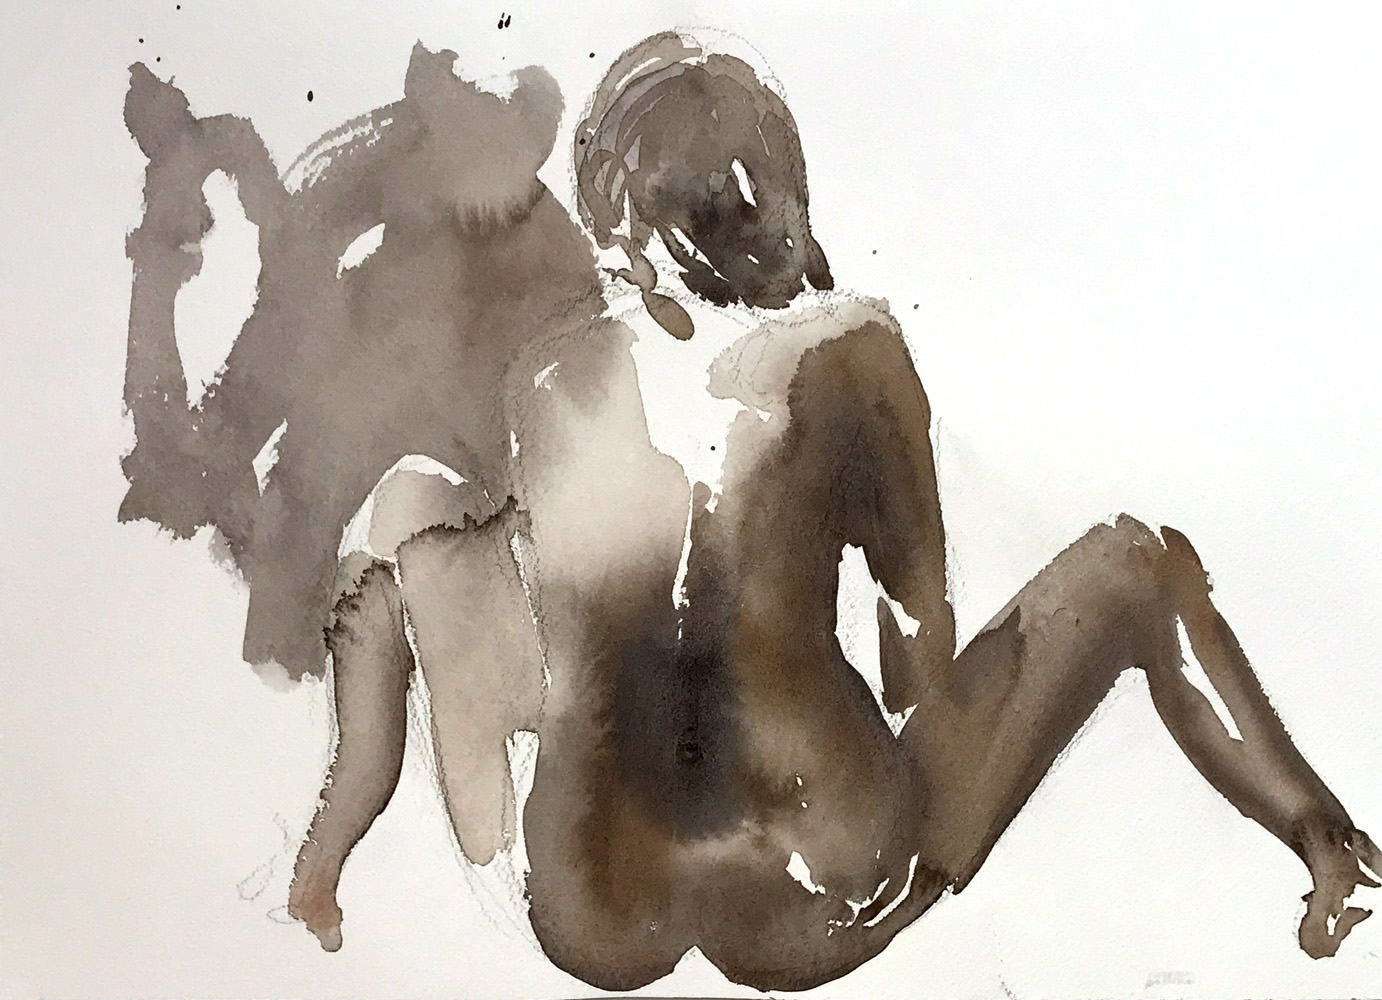 Indira-Cesarine-Anna-2018-Watercolor-on-paper-001.jpg